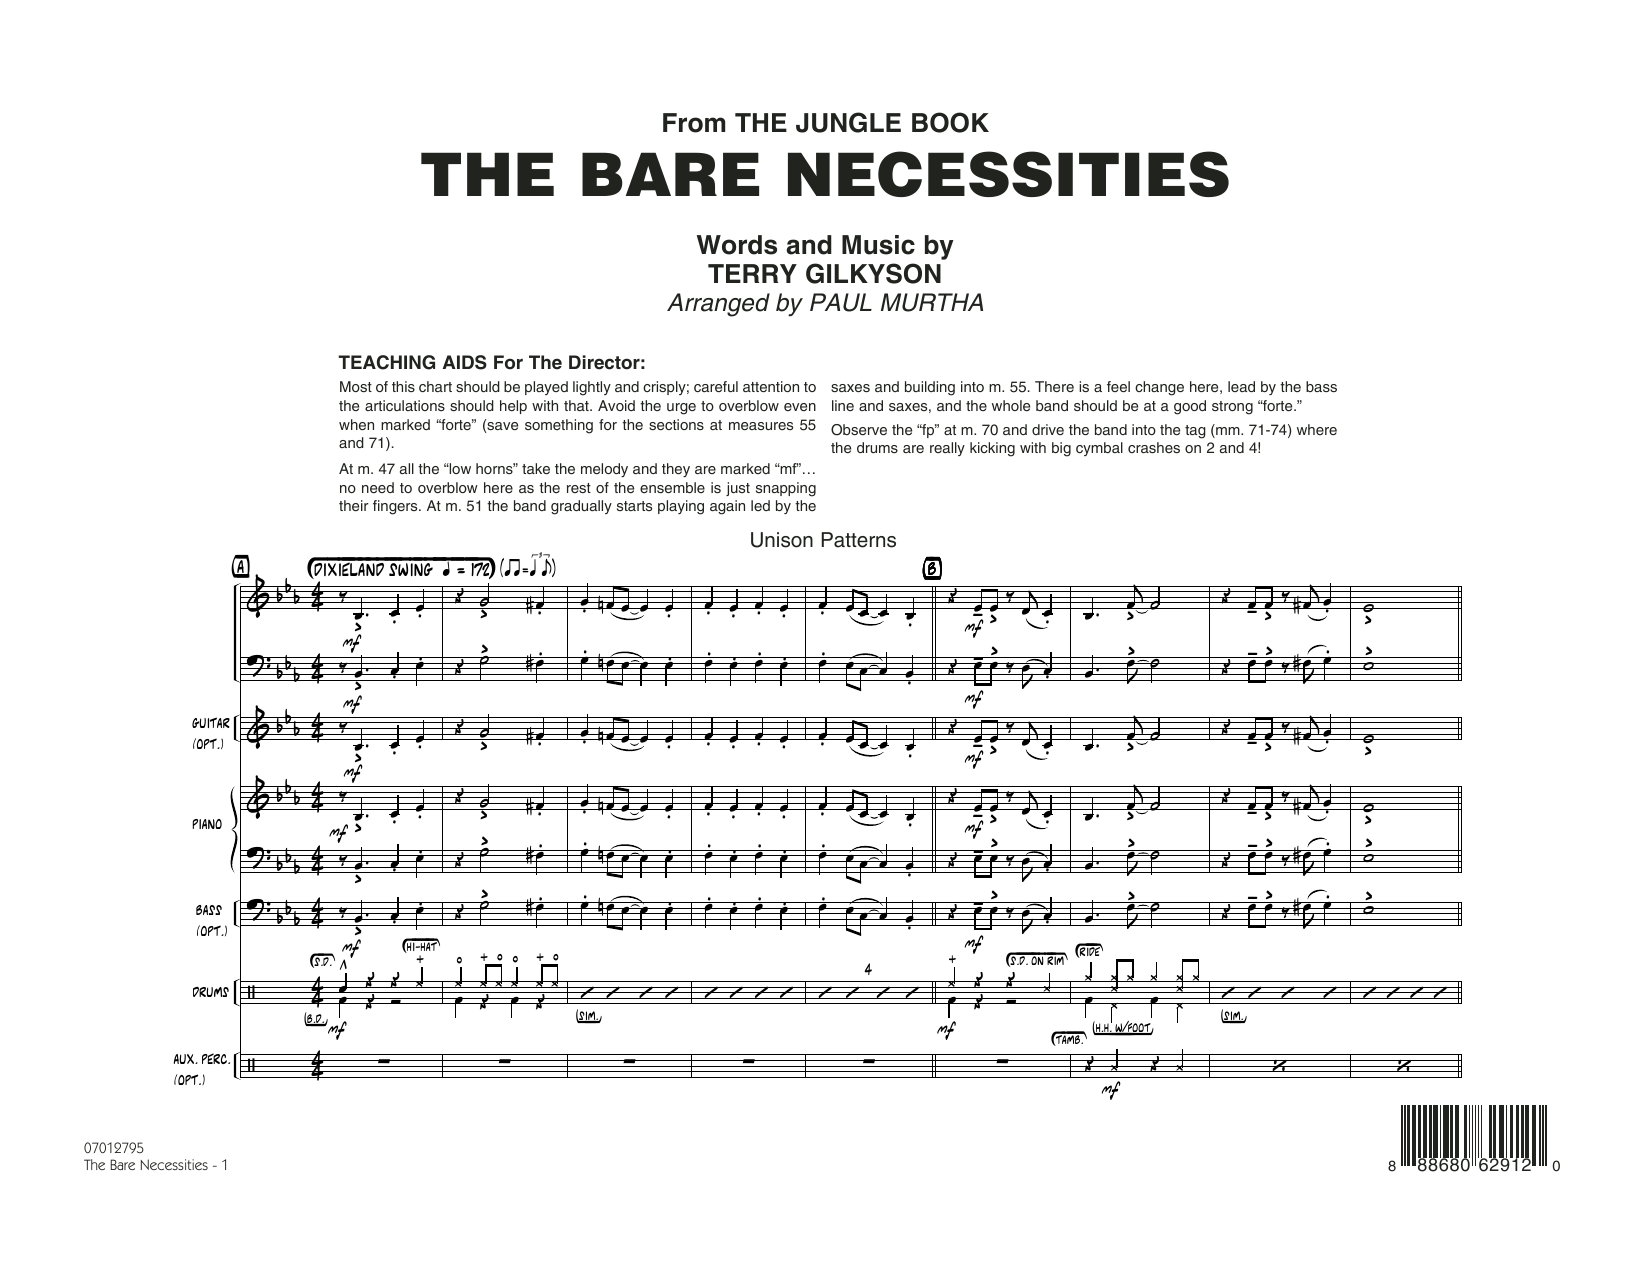 Paul Murtha The Bare Necessities (from The Jungle Book) - Conductor Score (Full Score) sheet music notes and chords. Download Printable PDF.